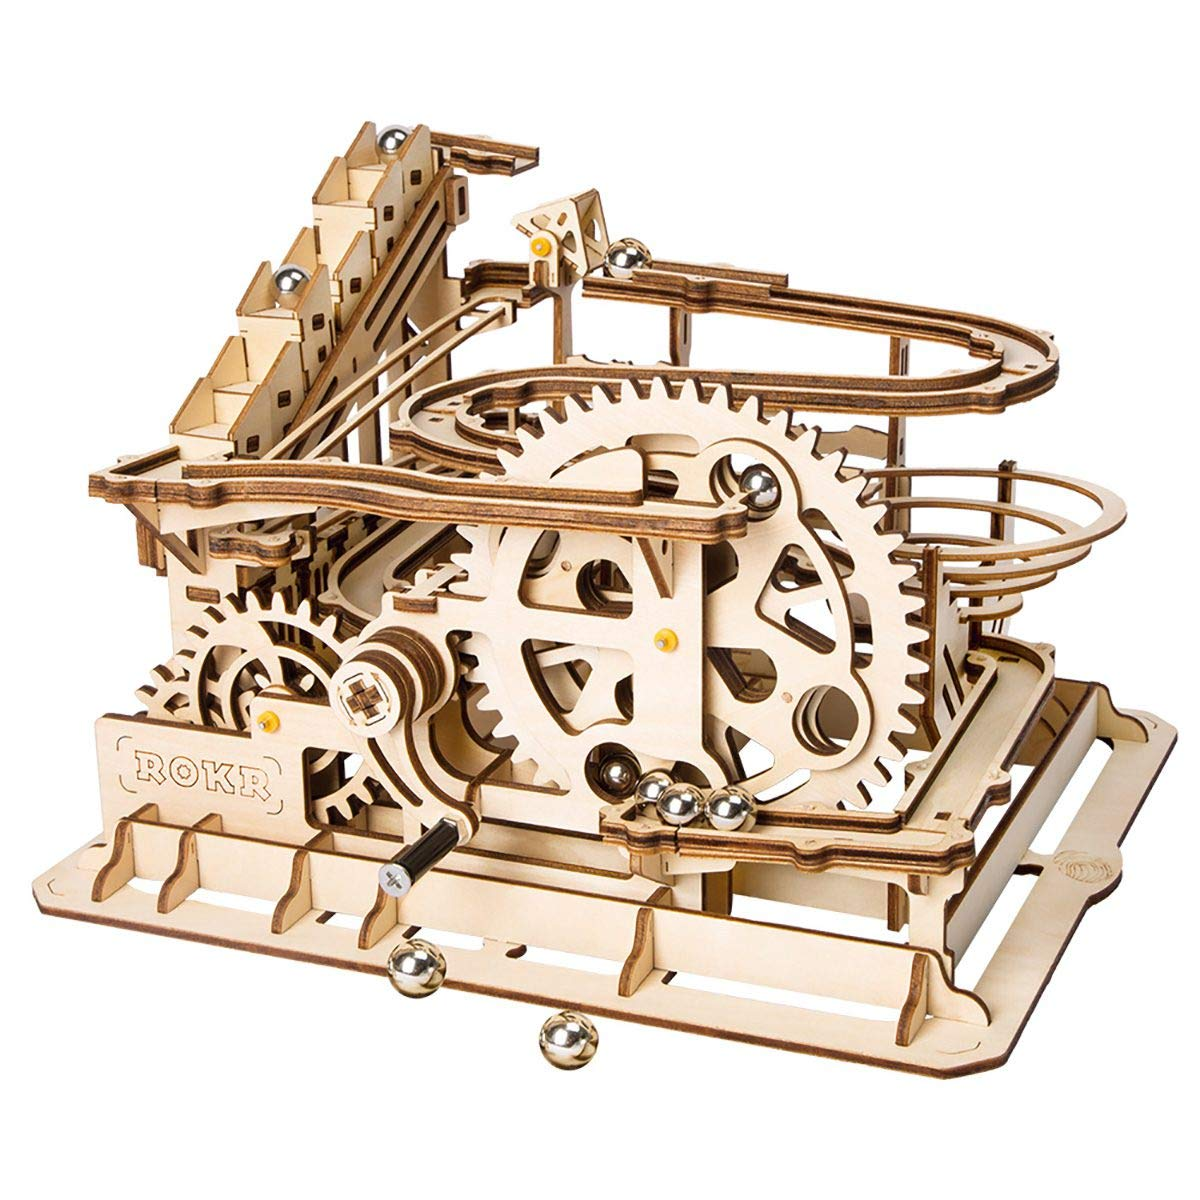 ROKR 3D Wooden Puzzle Adult Craft Model Building Set Mechanical Marble Run Games Home Decoration-Educational Toy for Christmas,Birthday Gift for Boys and Girls Age 14+(Magic Crush Waterwheel Coaster) by ROKR